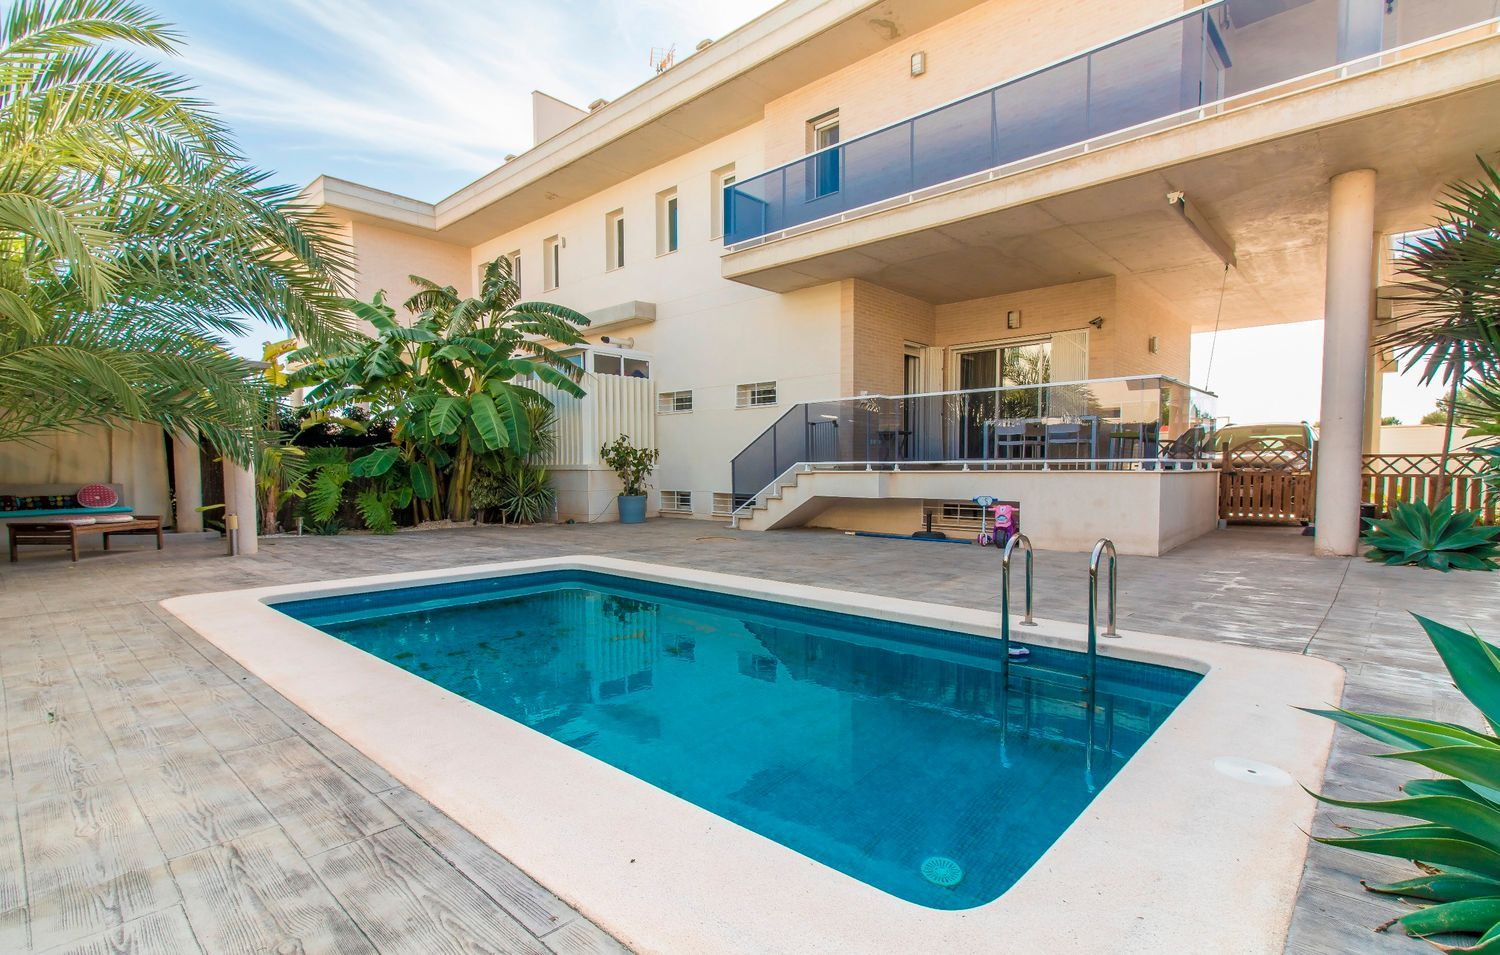 Beautiful Semi-Detached Chalet with a Private Pool in Mutxamel, Alicante